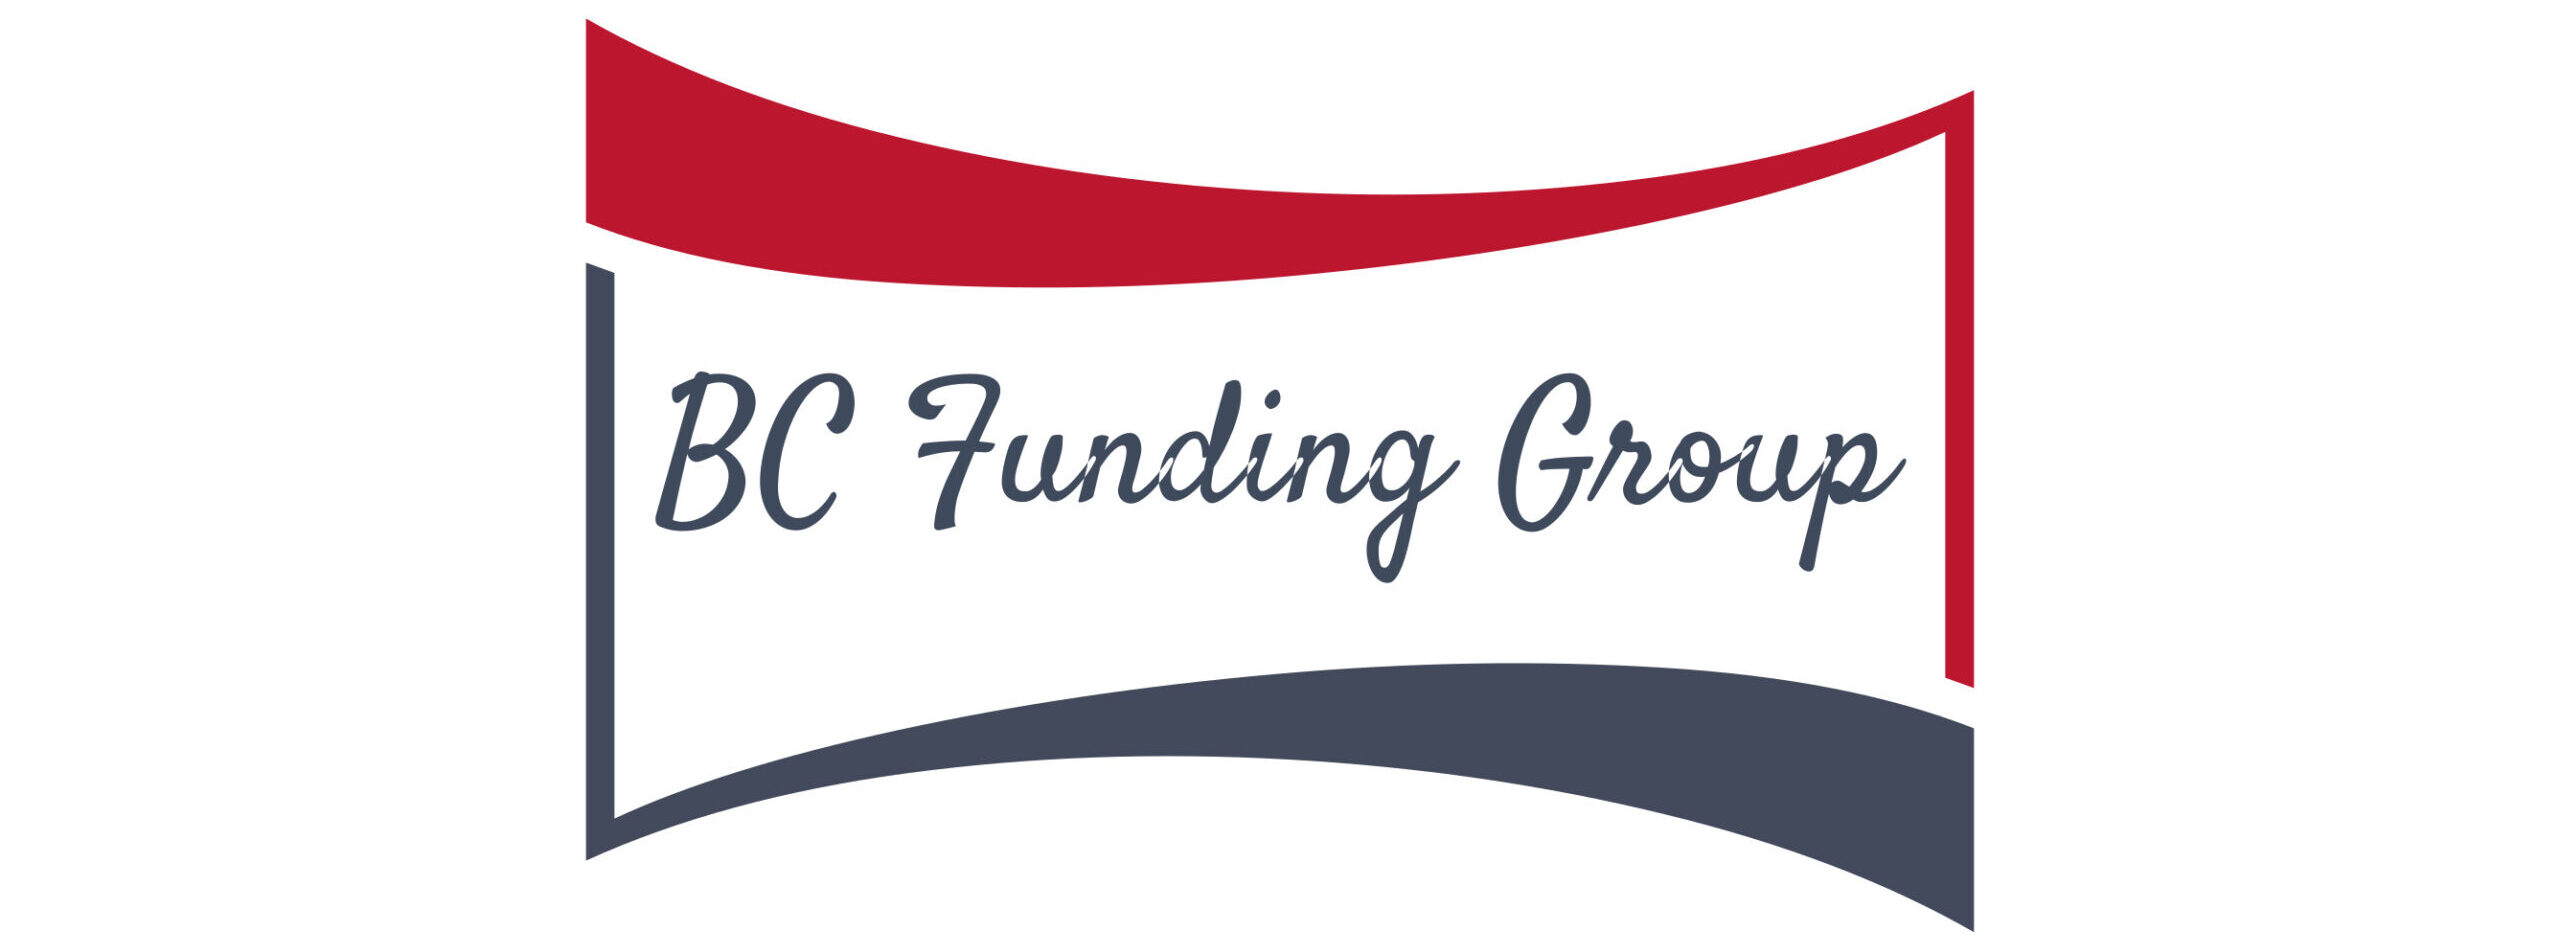 BC Funding Group